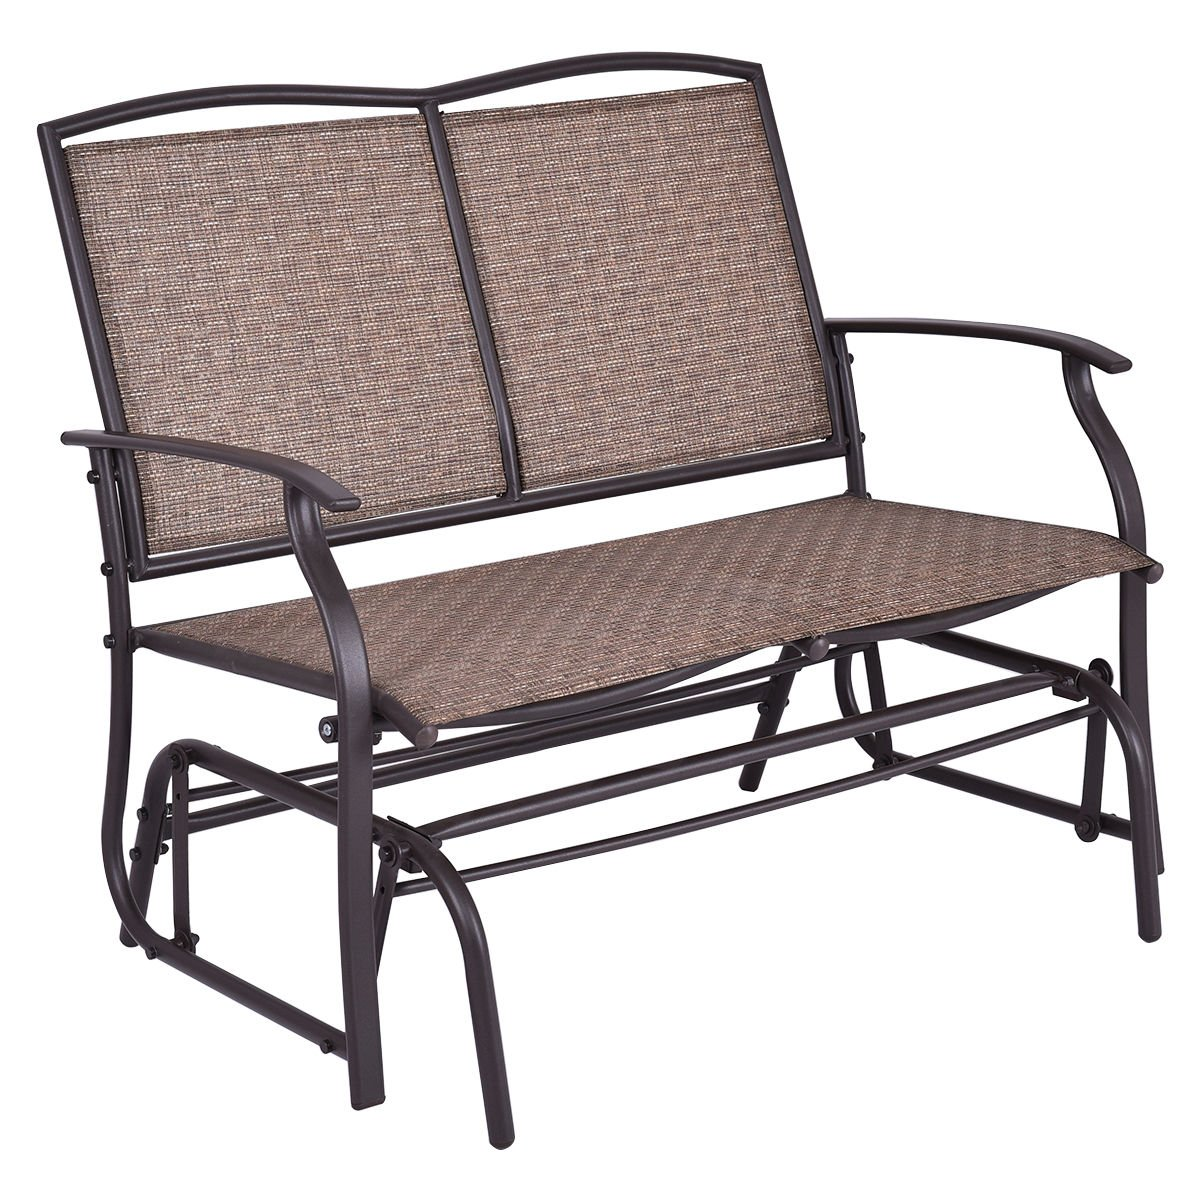 mainstays walmart ip creek outdoor sling patio glider wesley com bench seat